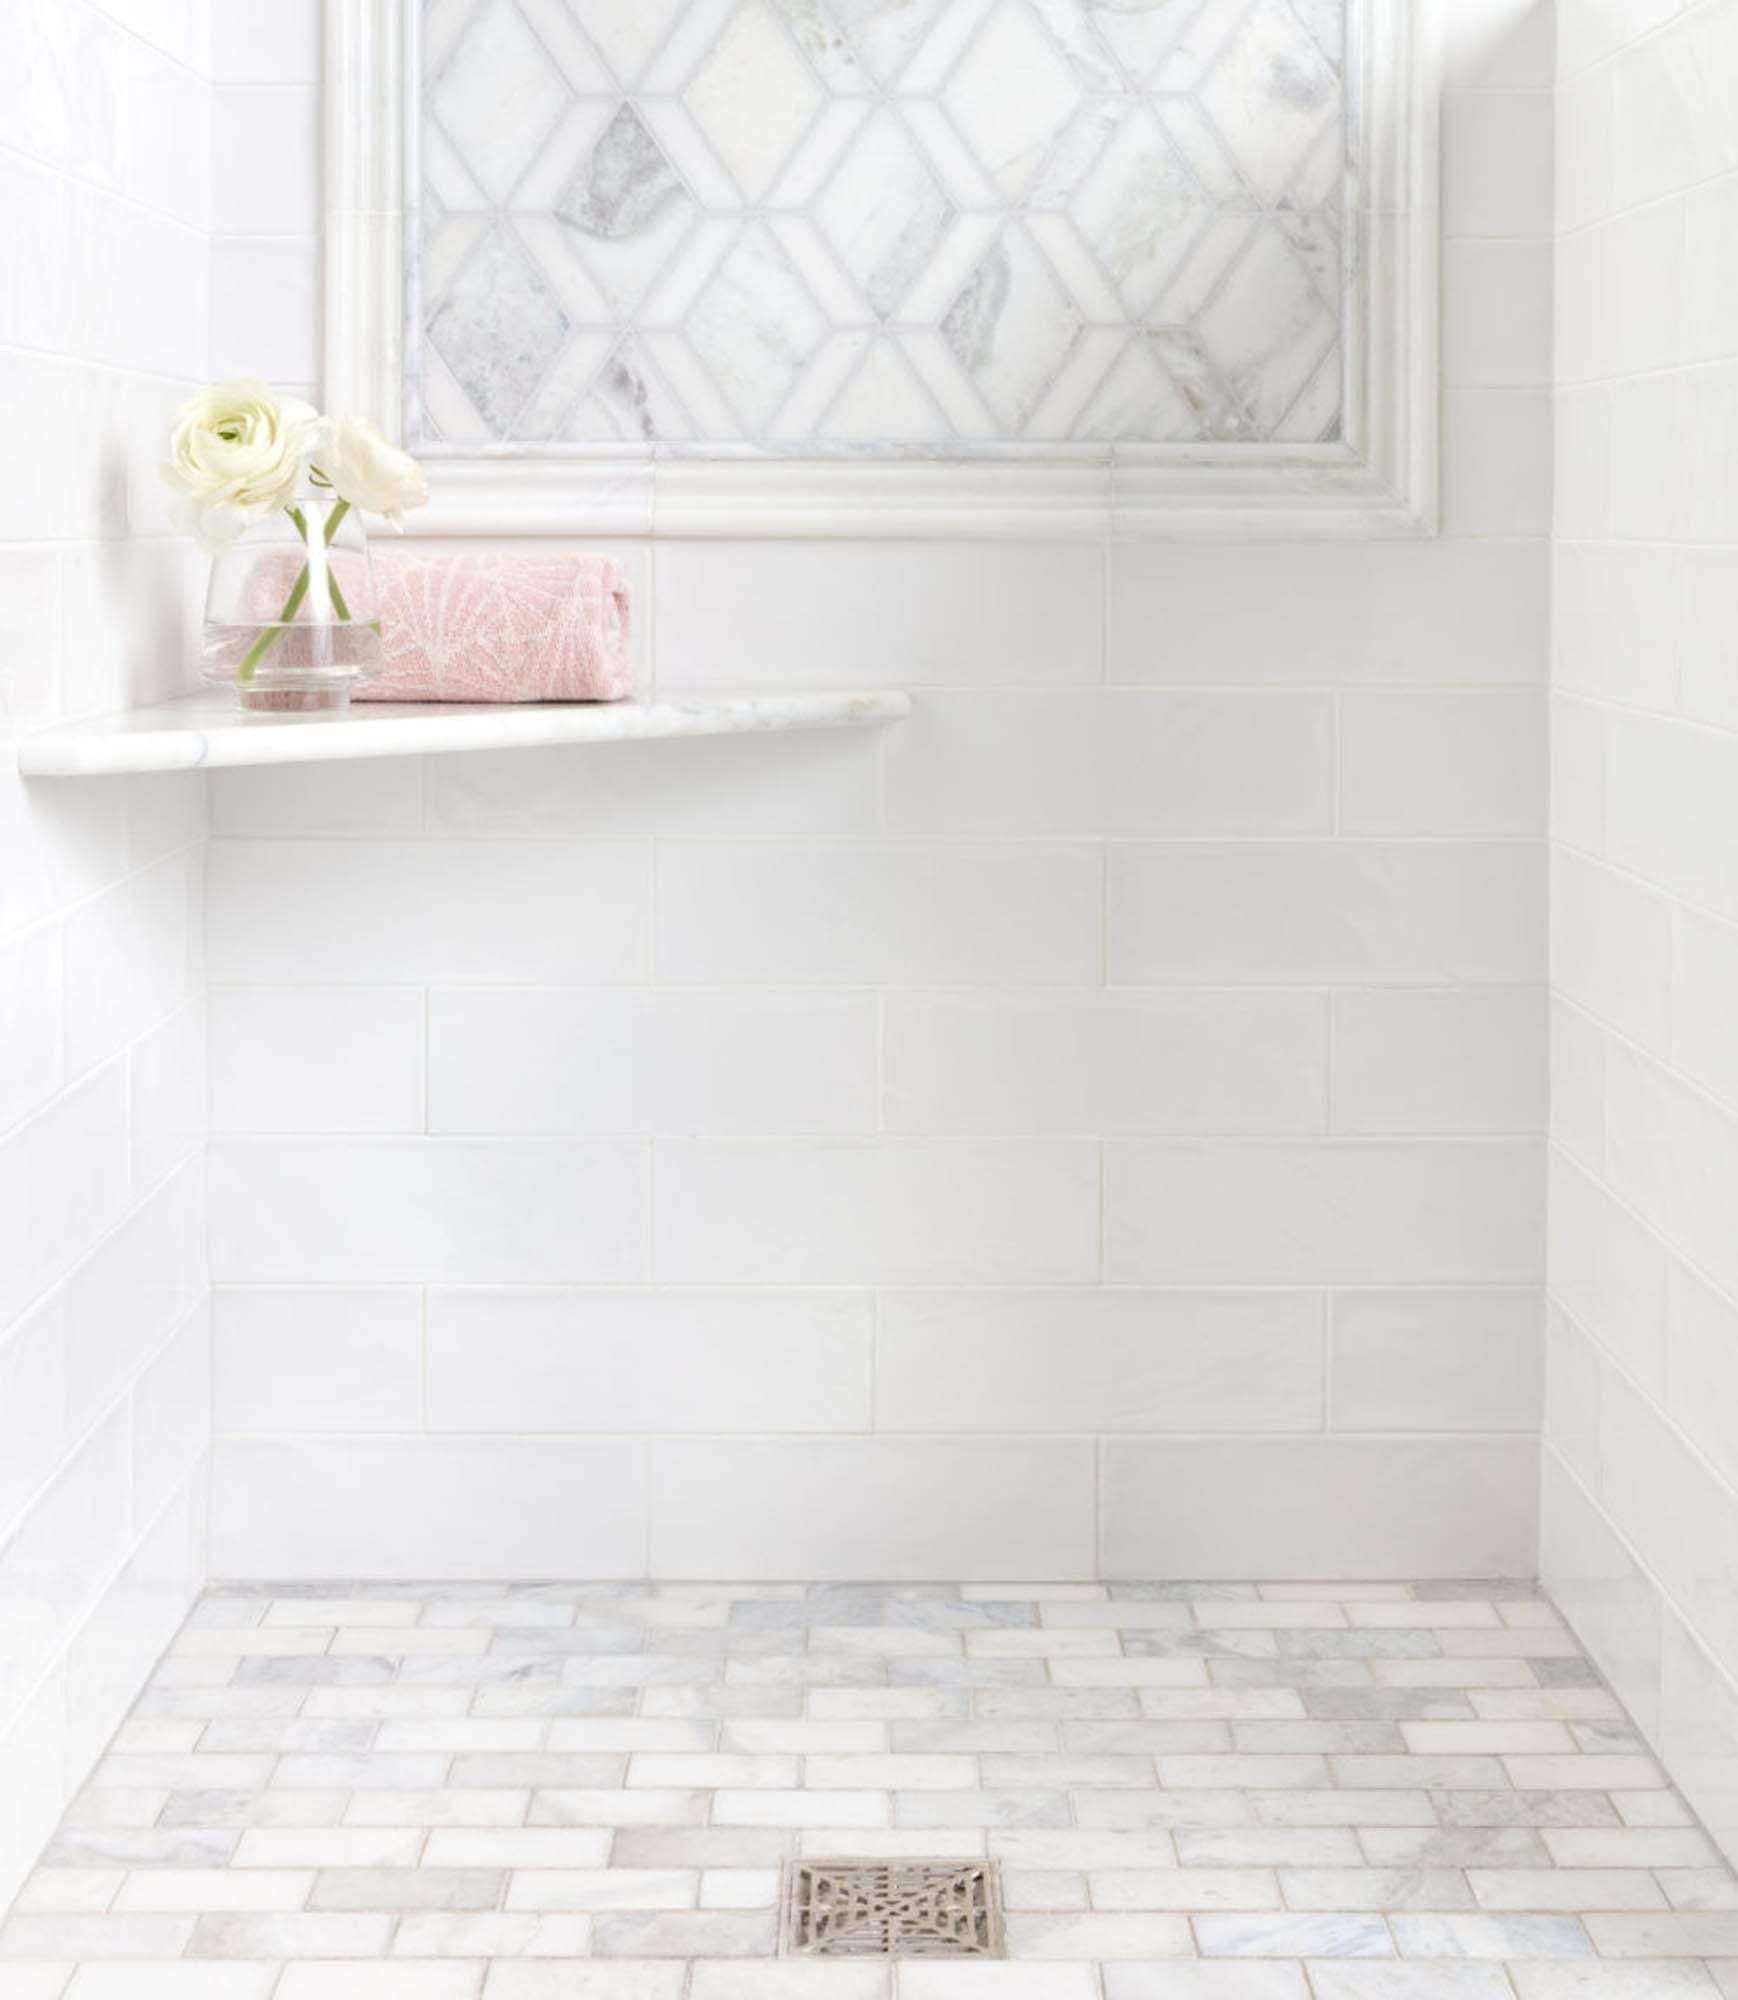 All white shower tile